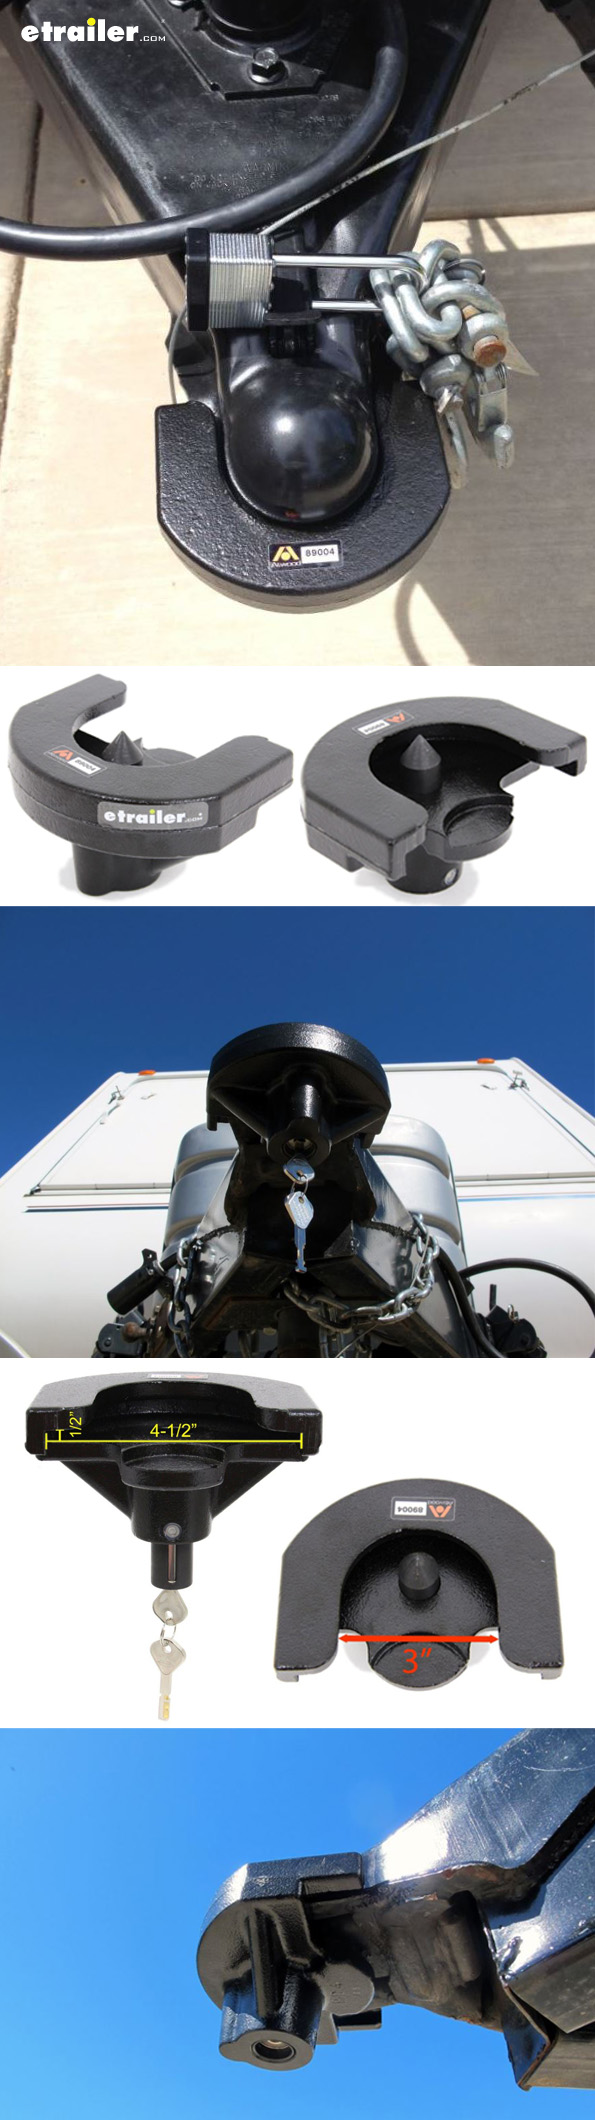 Prevent theft, plus your trailer or Camper will look good